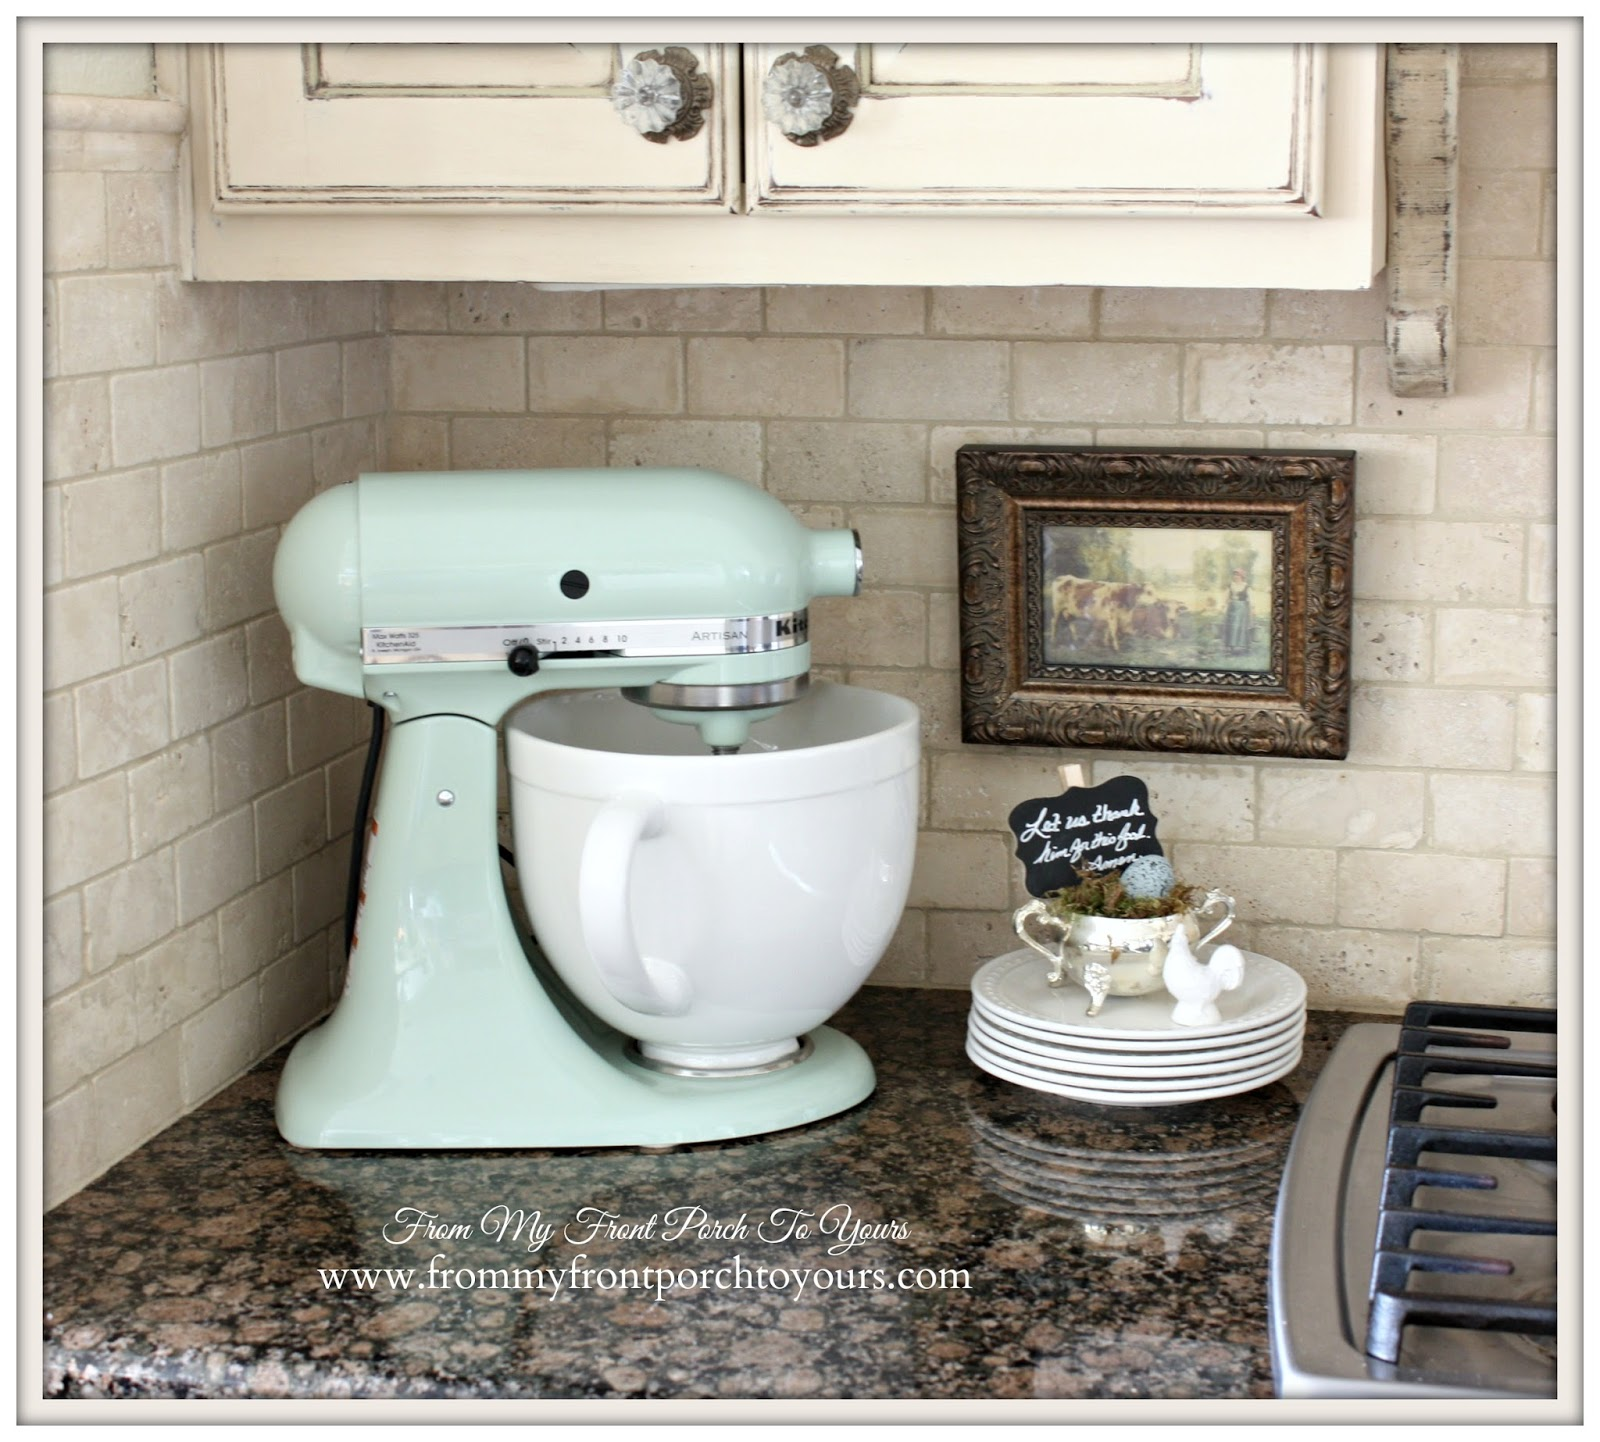 French Farmhouse Kitchen-Pistachio KitchenAid Mixer- From My Front Porch To Yours